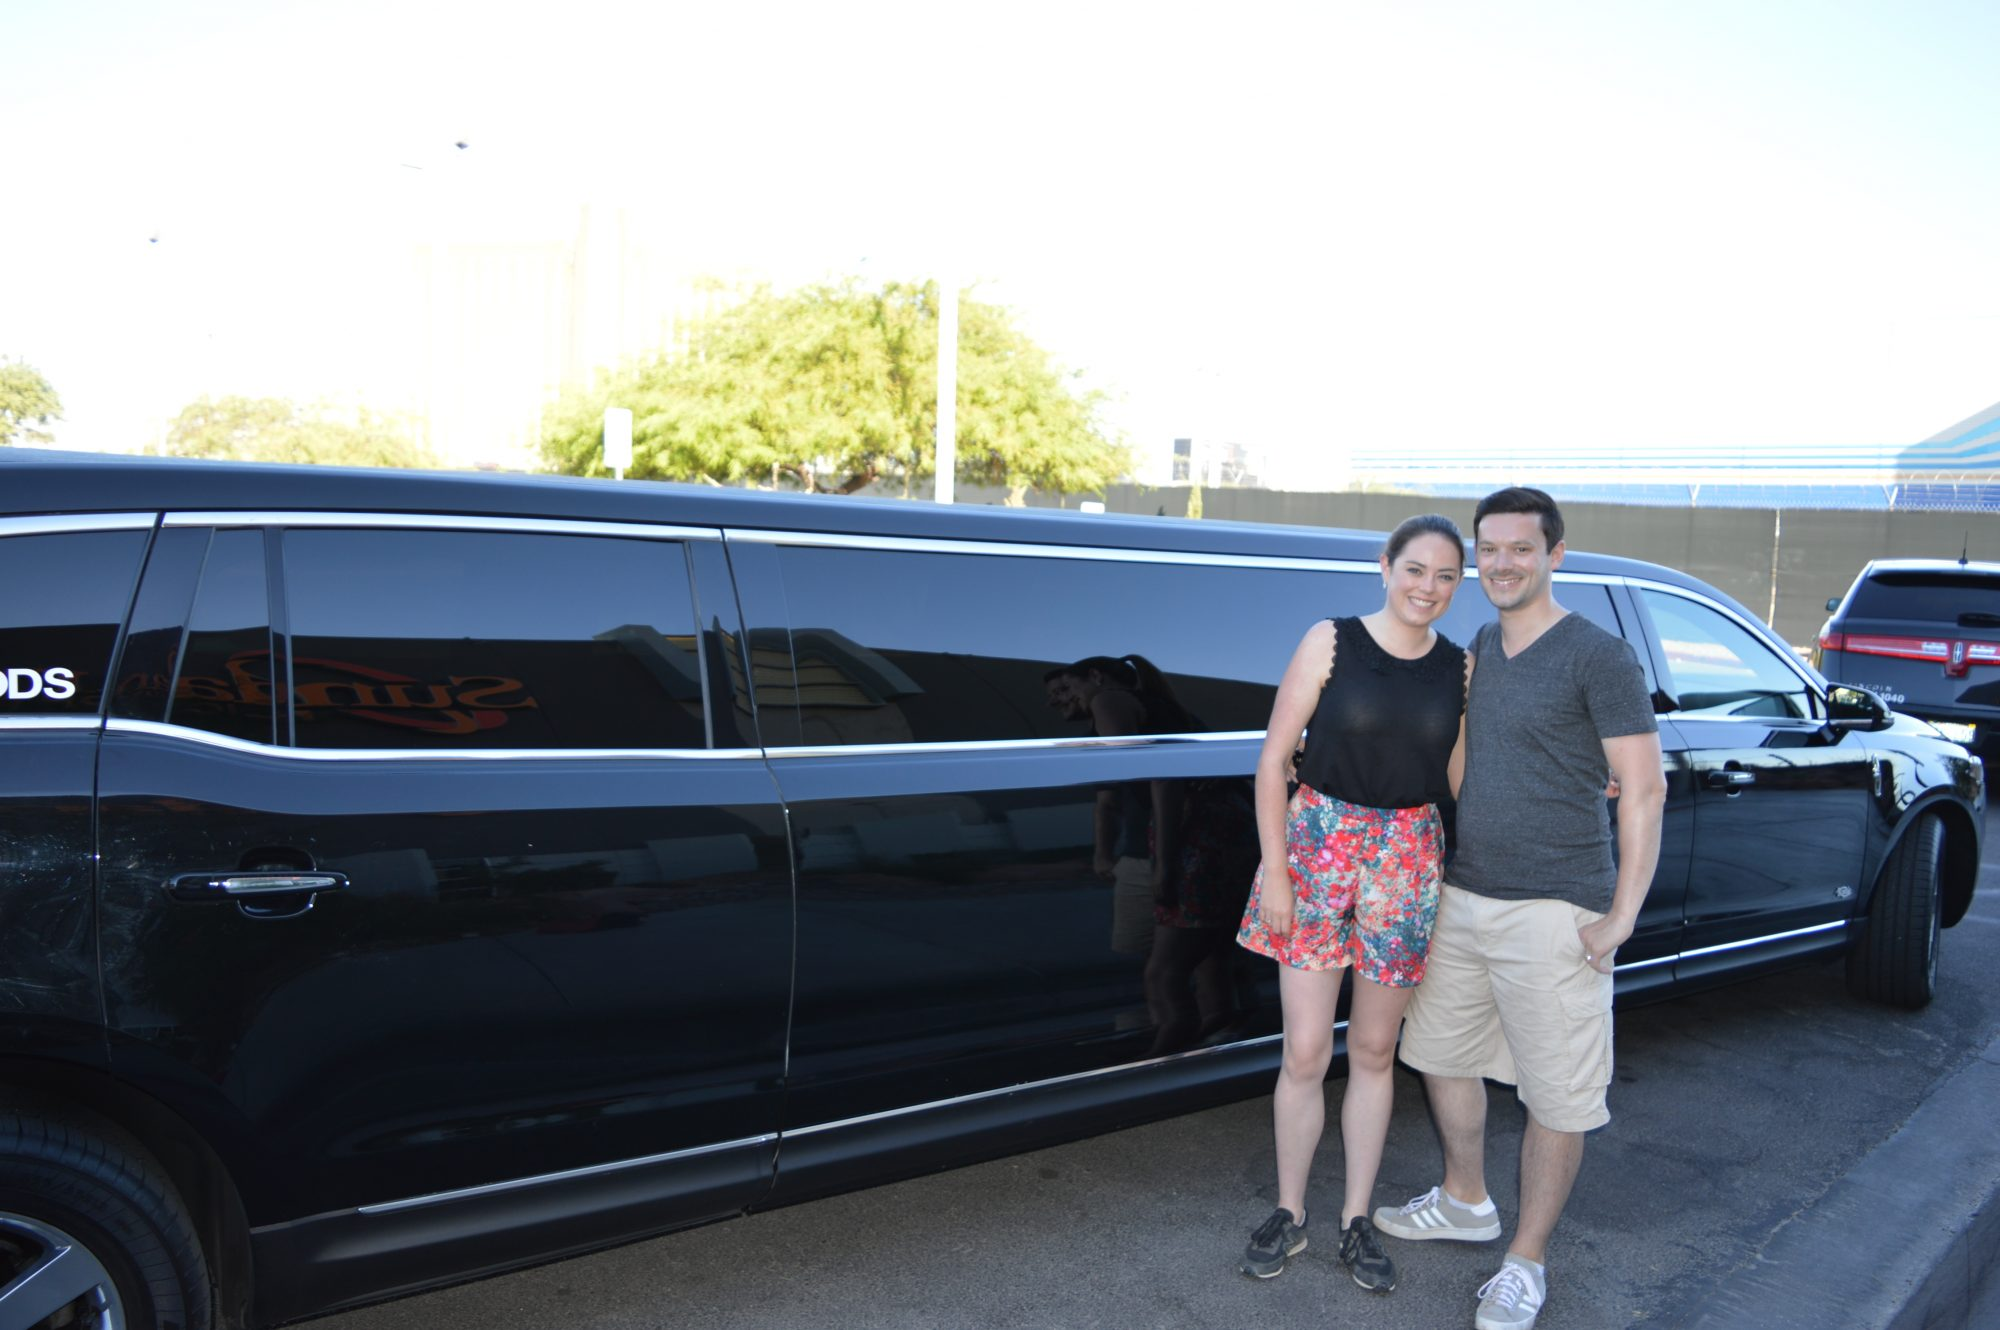 Limousine pick up